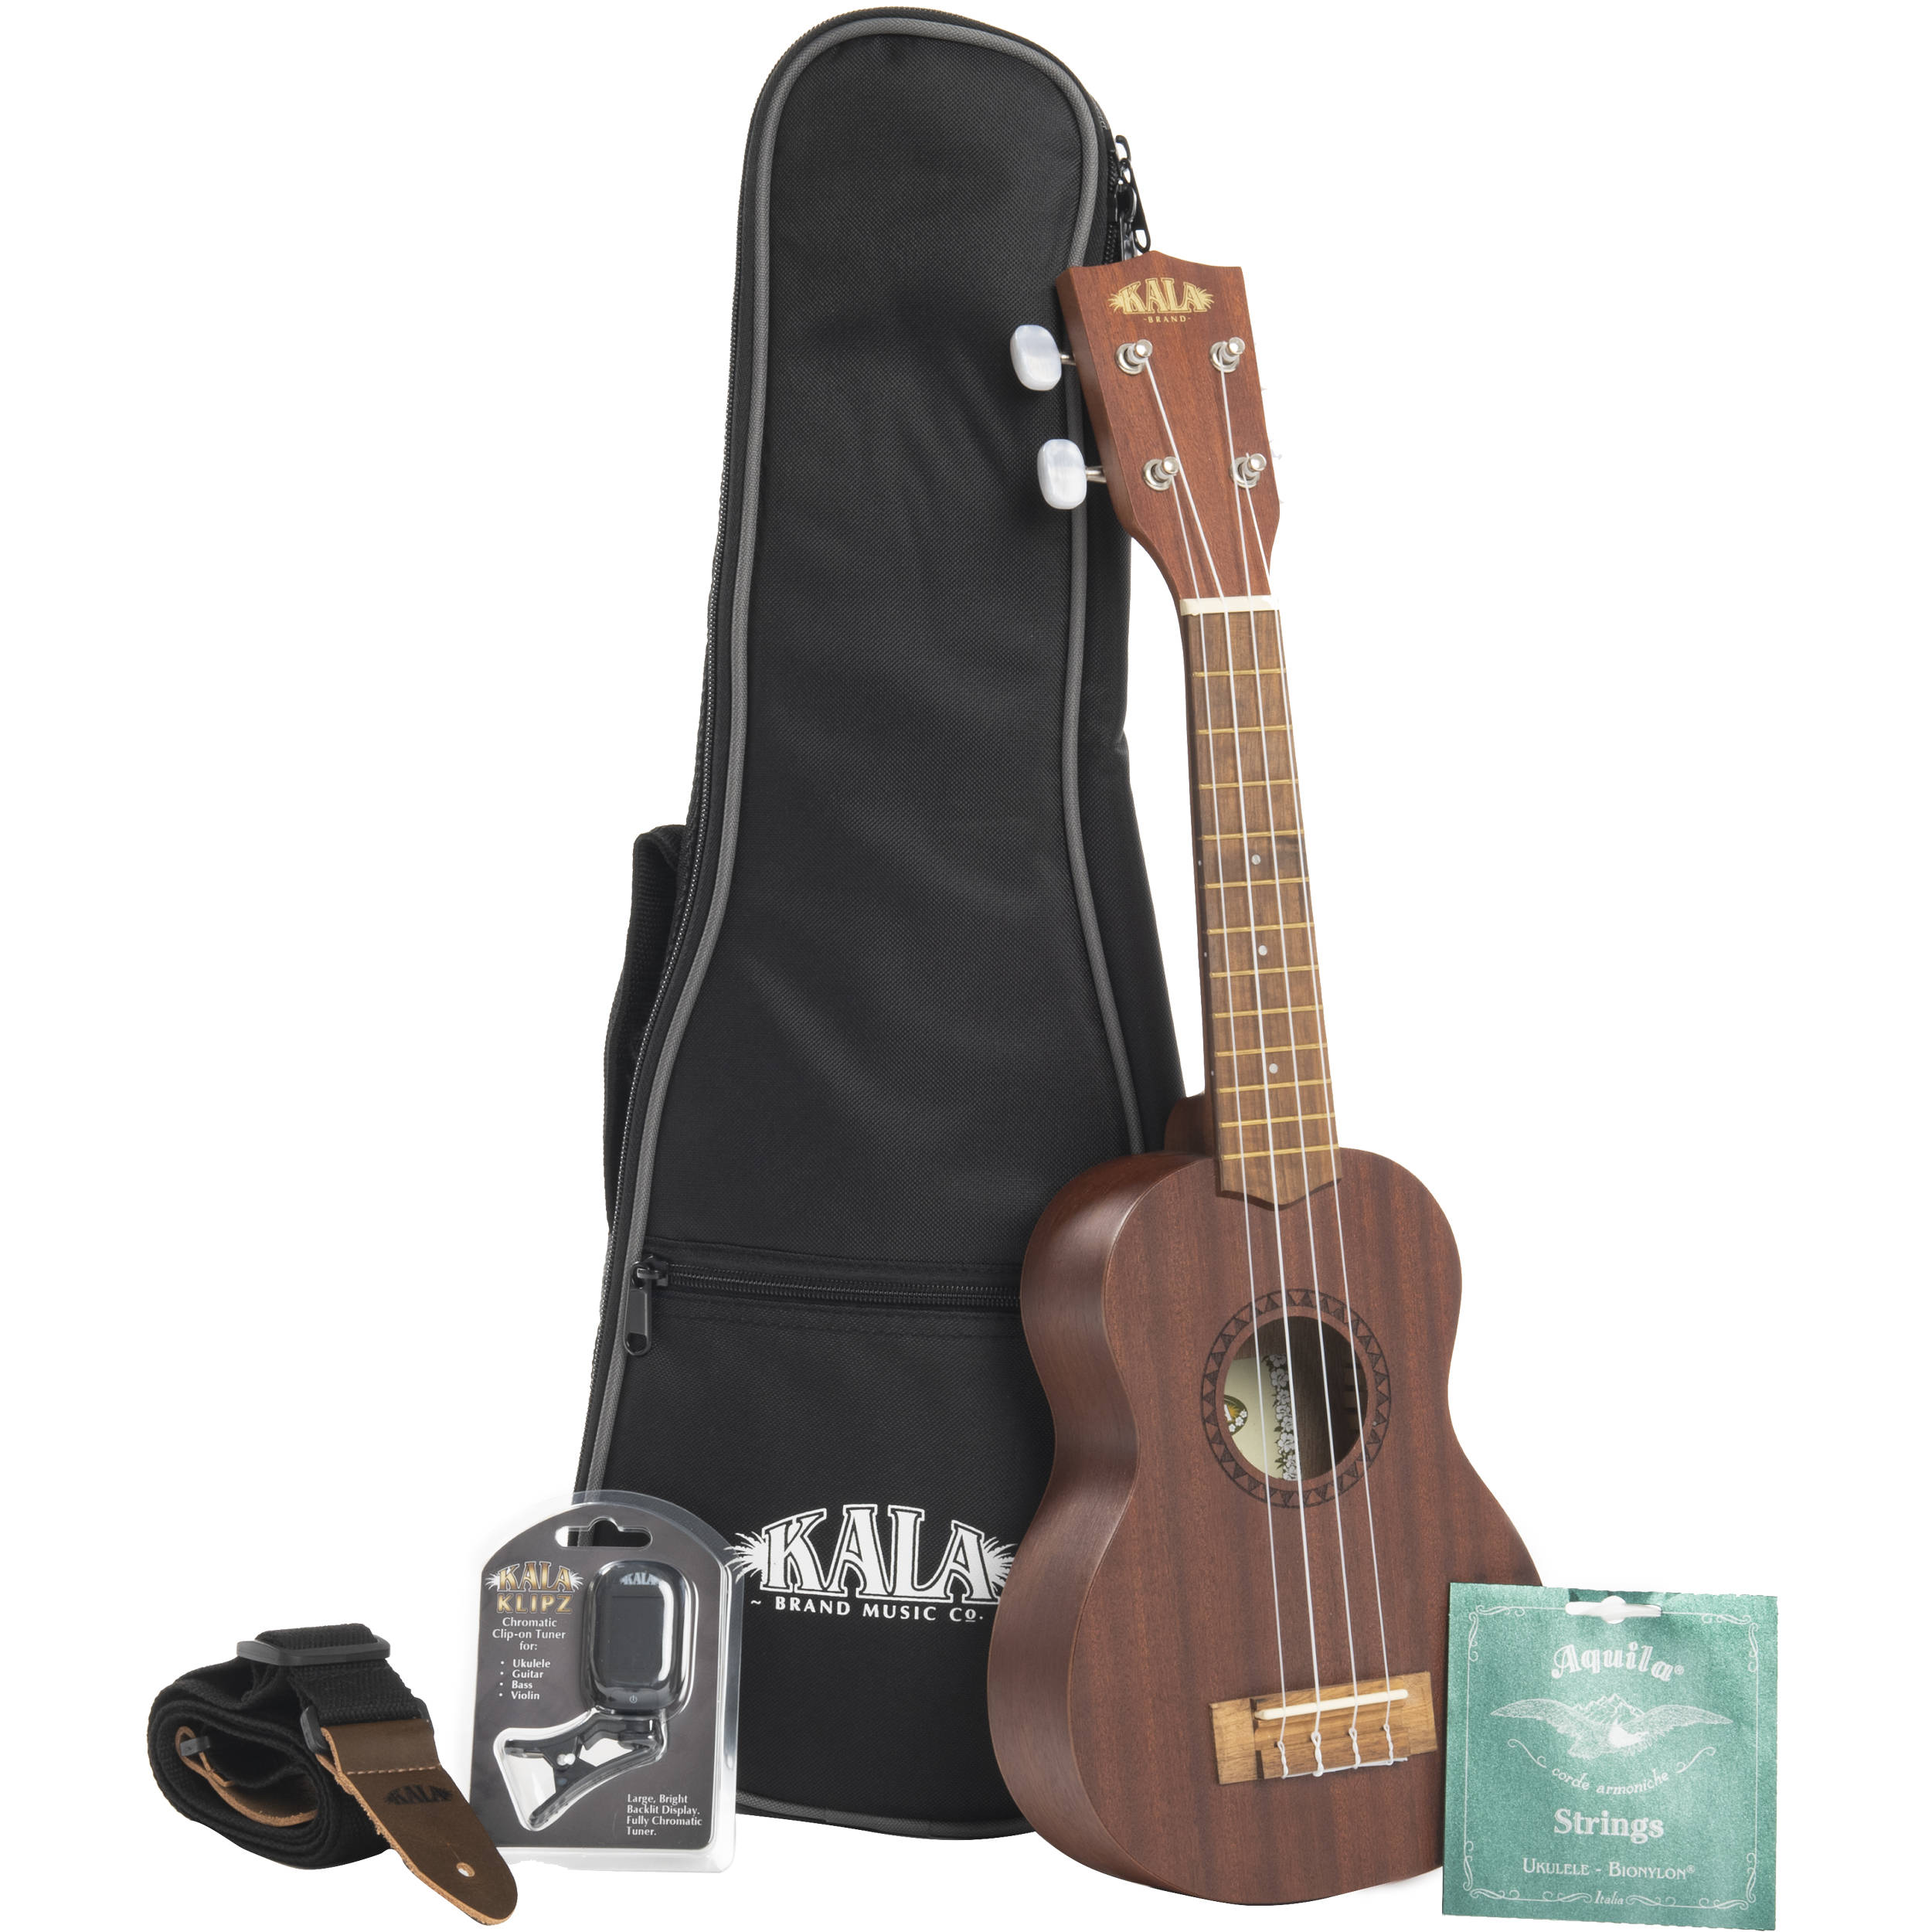 KALA Satin Mahogany Tenor Ukulele Bundle (with  Case/Tuner/Strap/Strings/More)